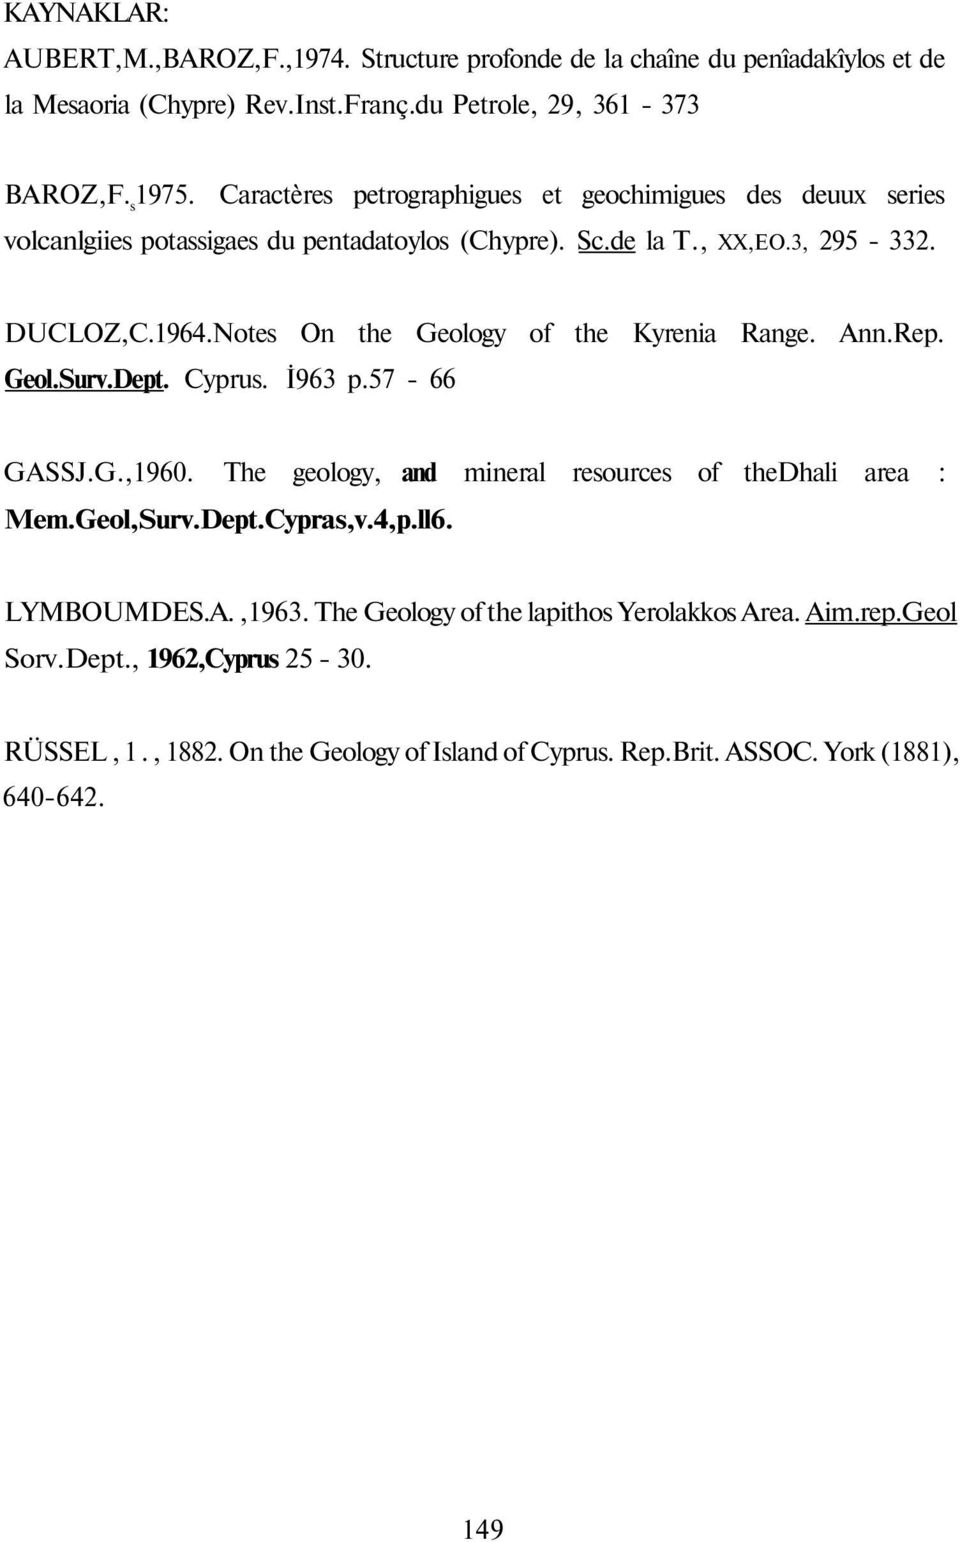 Notes On the Geology of the Kyrenia Range. Ann.Rep. Geol.Surv.Dept. Cyprus. İ963 p.57-66 GASSJ.G.,1960. The geology, and mineral resources of thedhali area : Mem.Geol,Surv.Dept.Cypras,v.